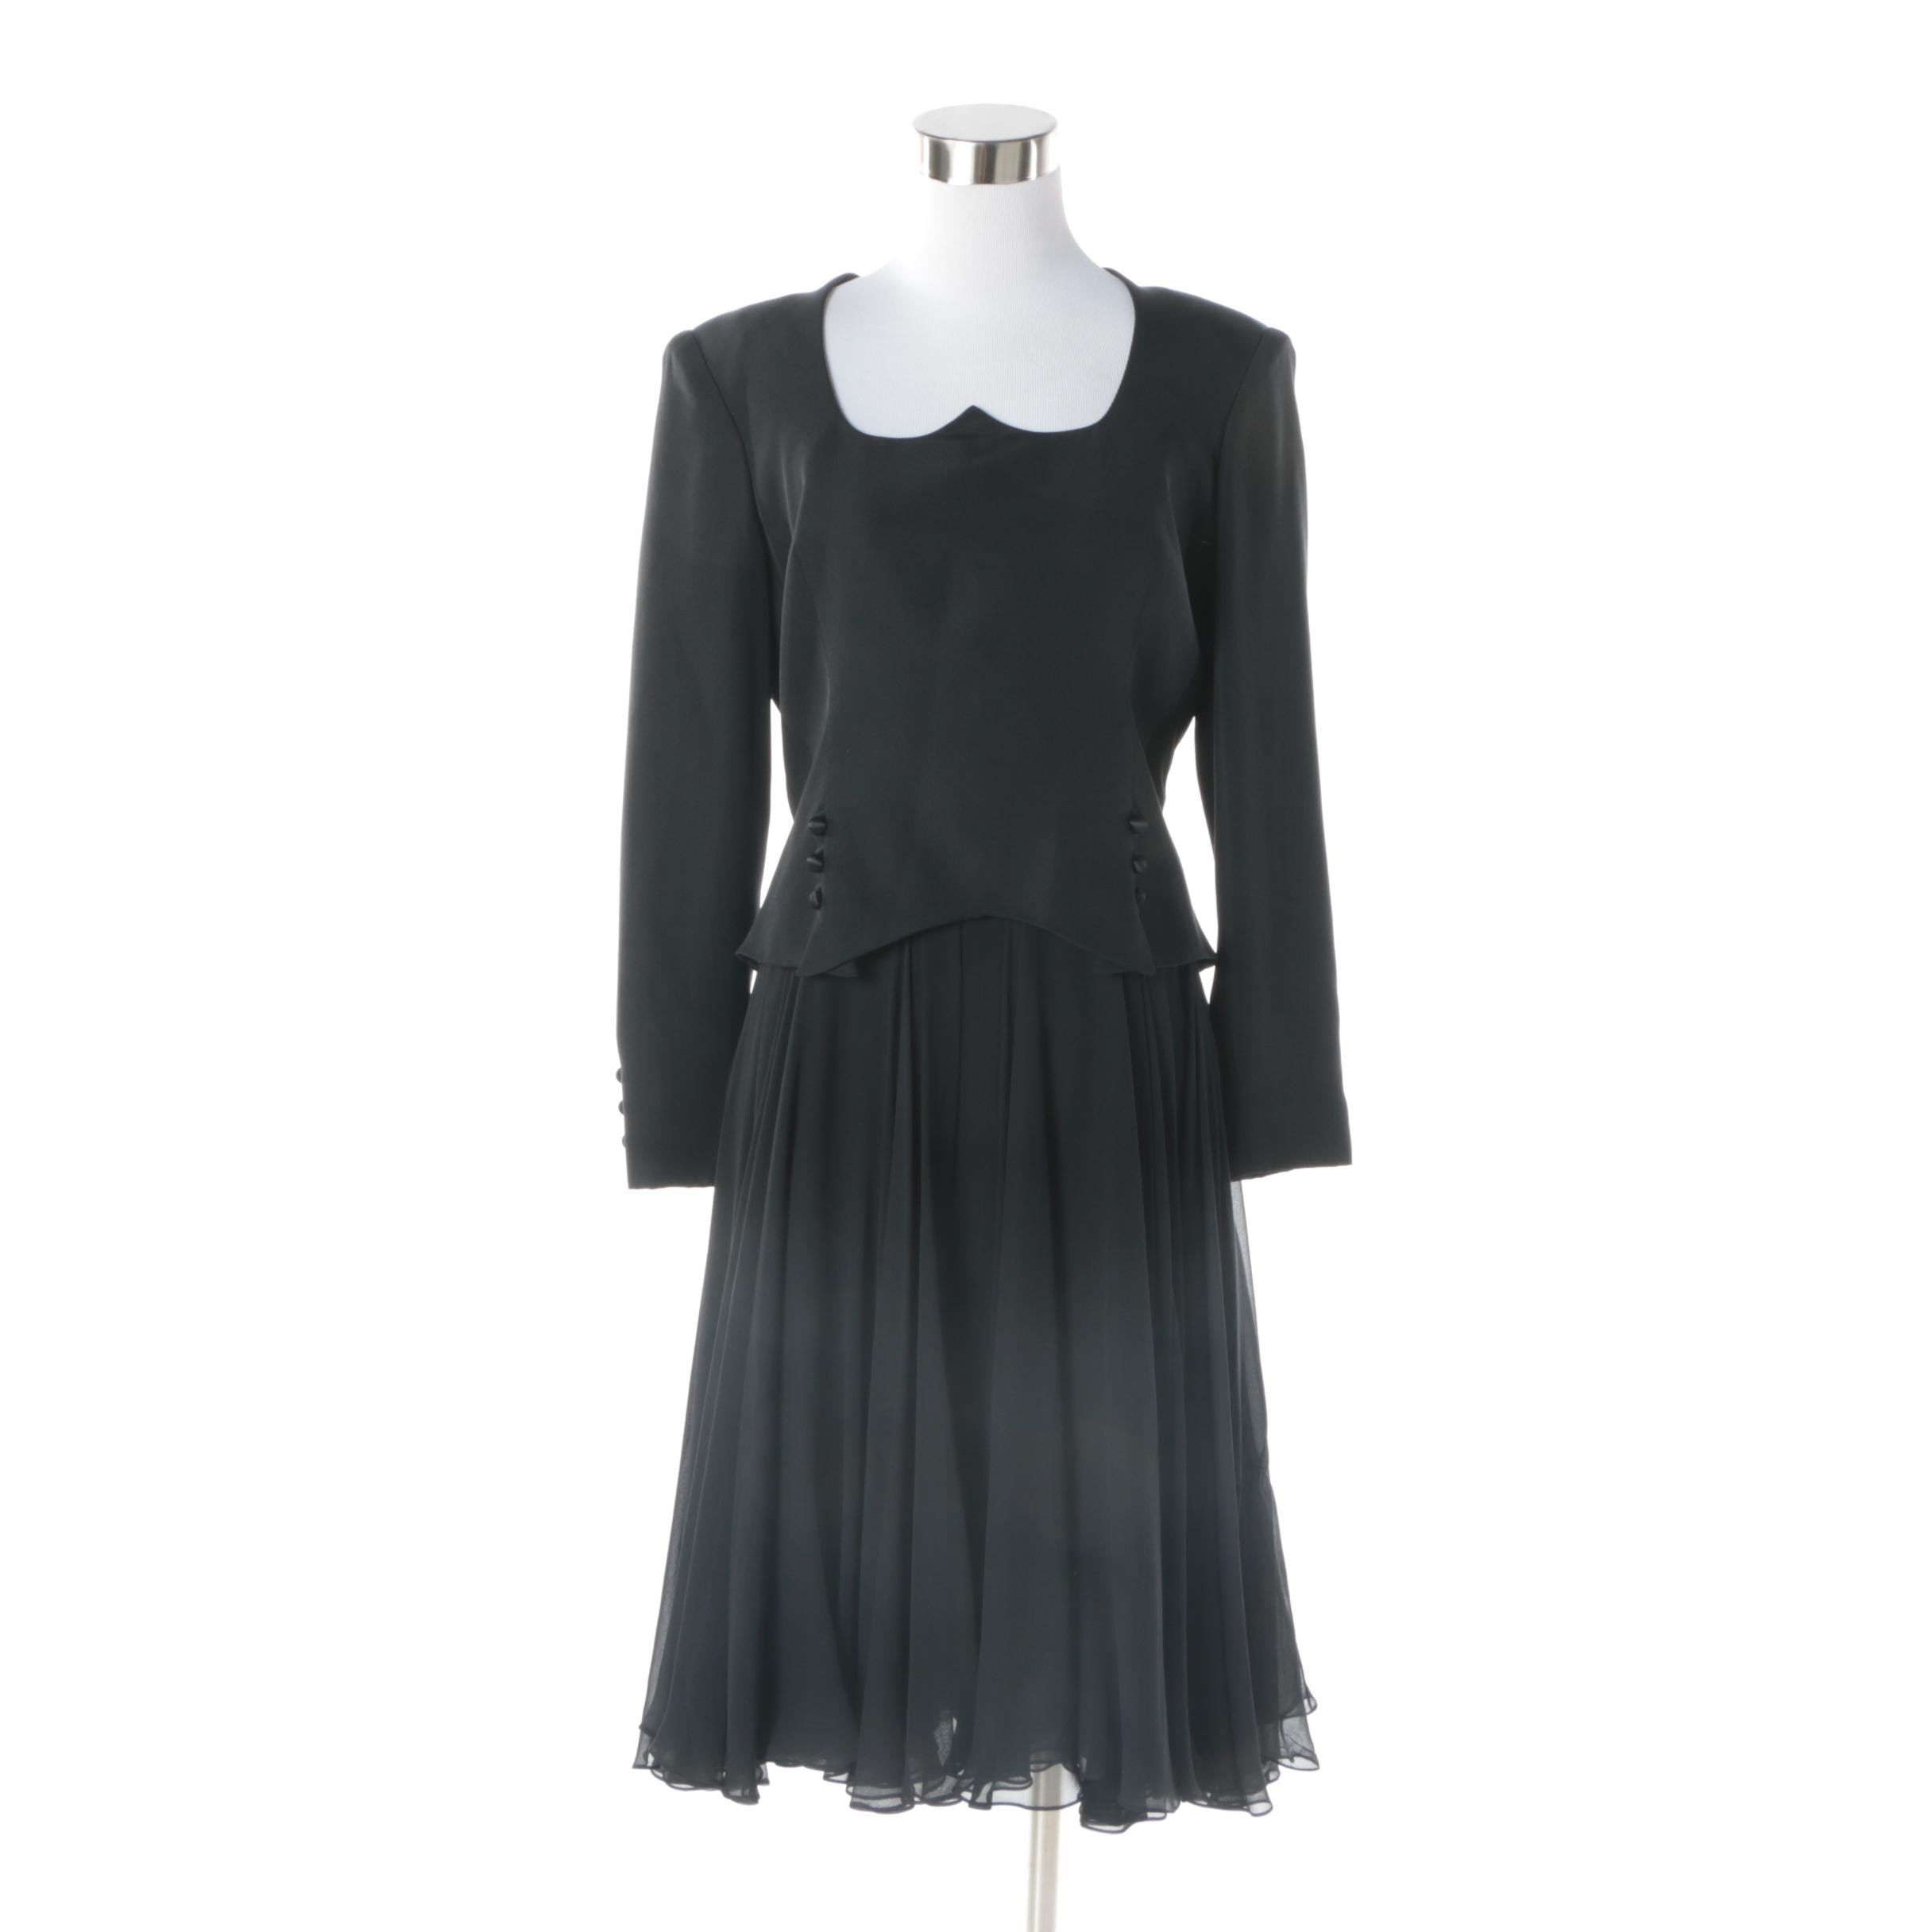 1980s Travilla Black Silk Evening Dress with Chiffon Skirt and Button Detail